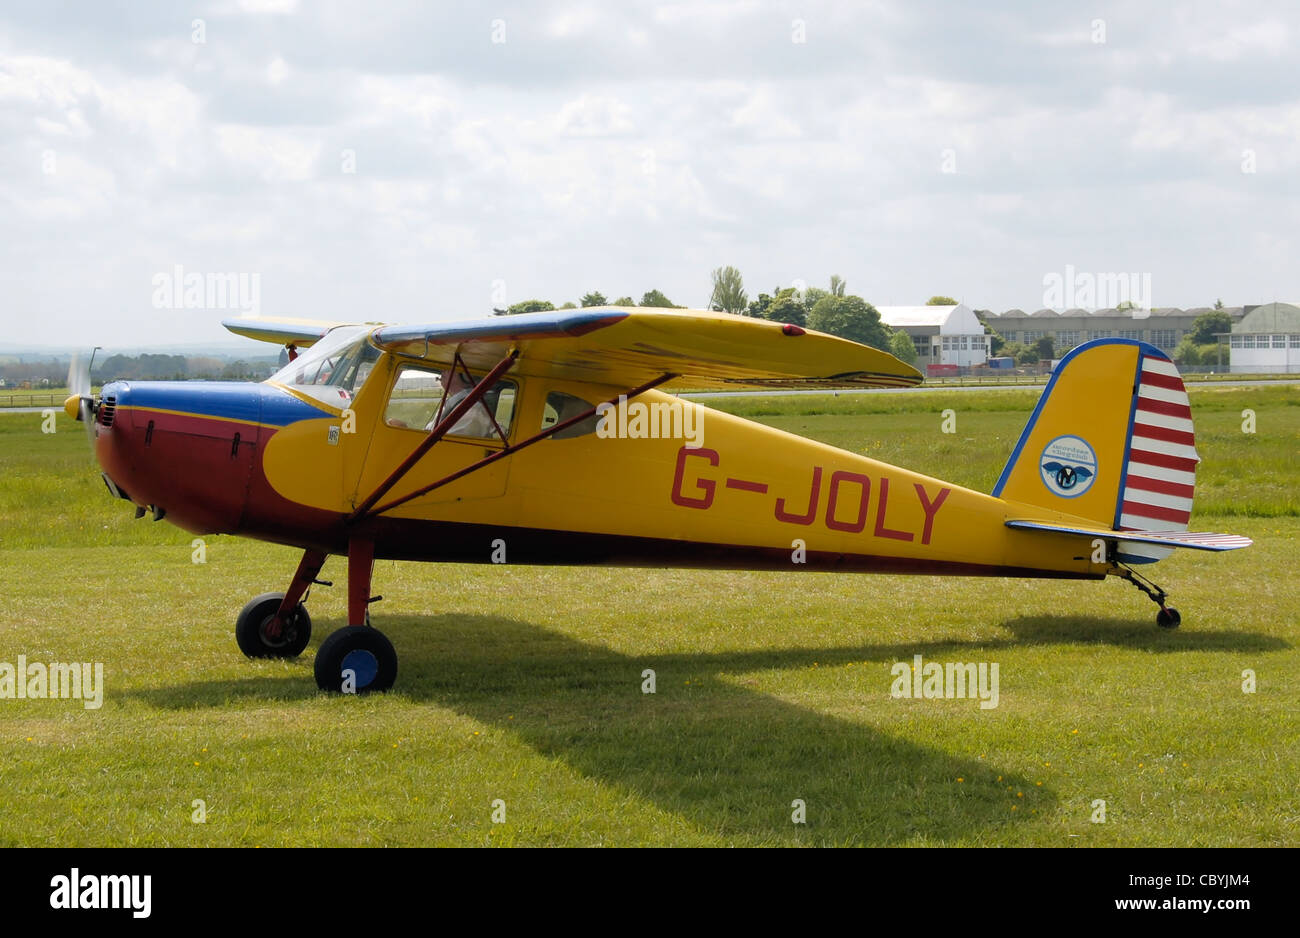 : Cessna 120 (G-JOLY), built 1947, at a vintage aircraft rally (the Great Vintage Flying Weekend), Kemble Airport - Stock Image